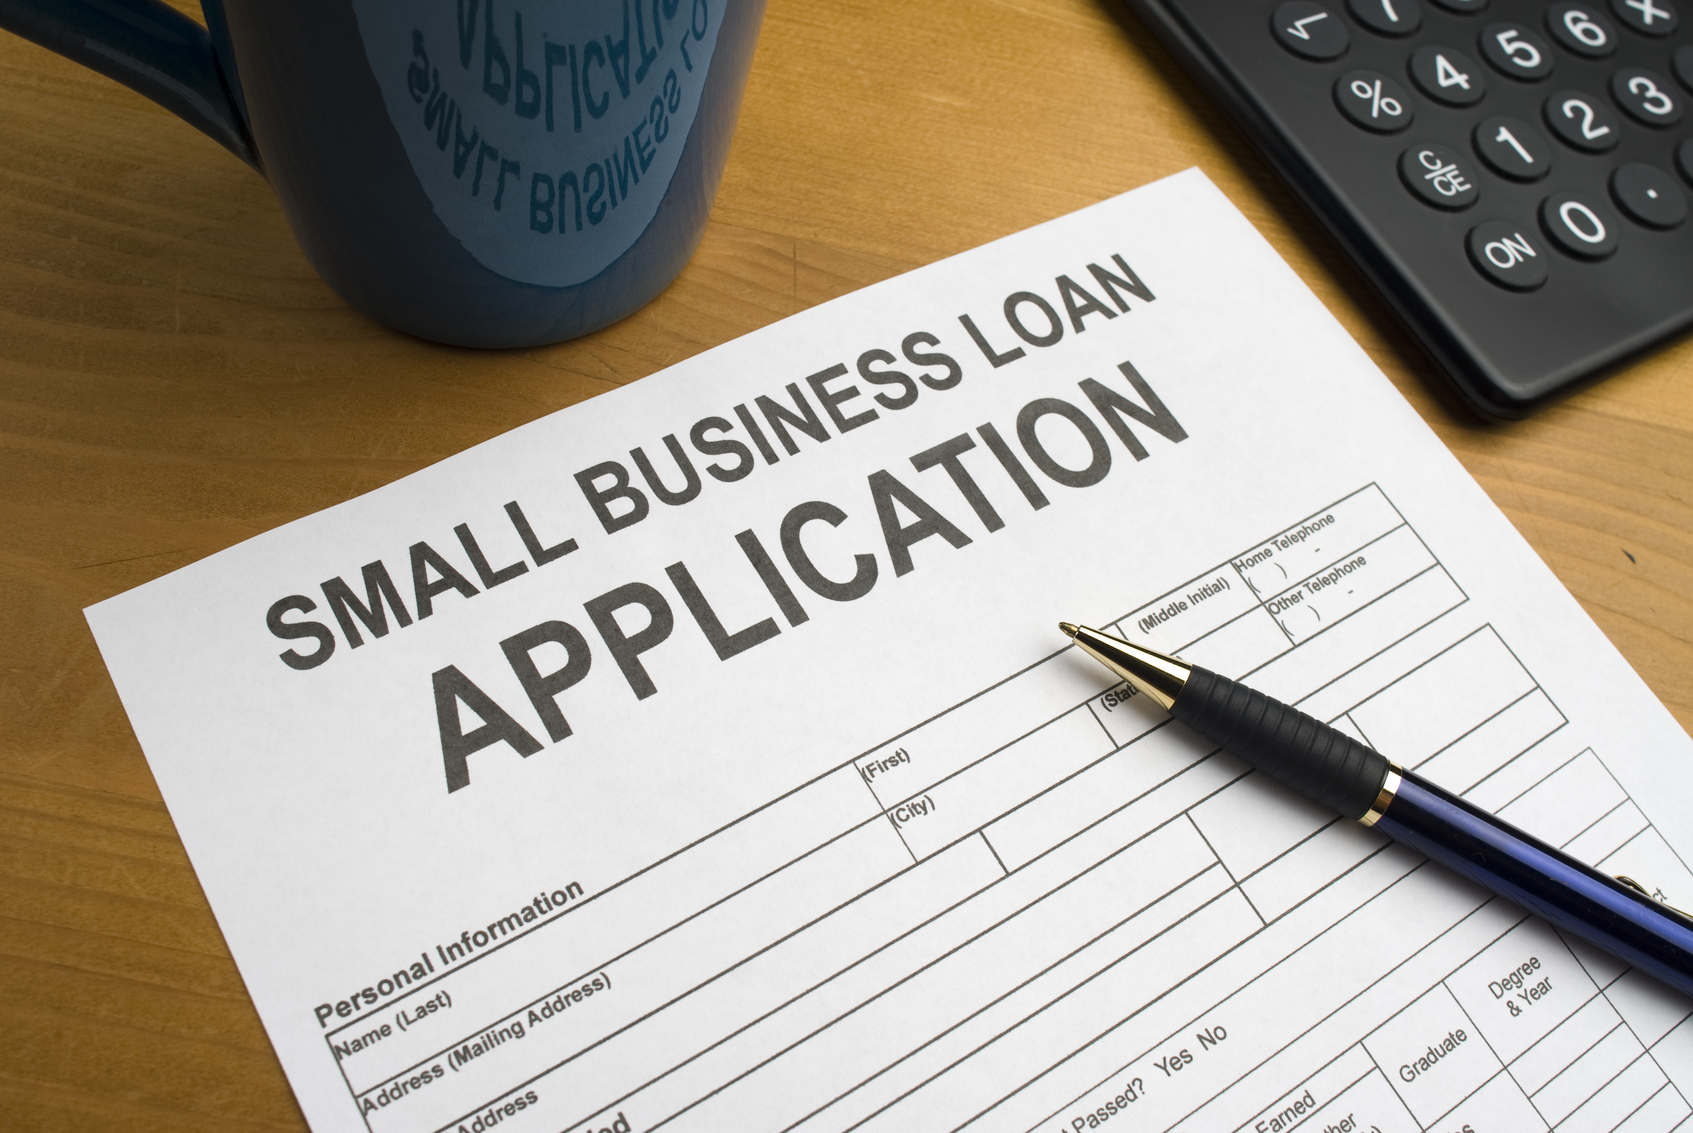 Businesses, banks having major issues with SBA disaster relief loans